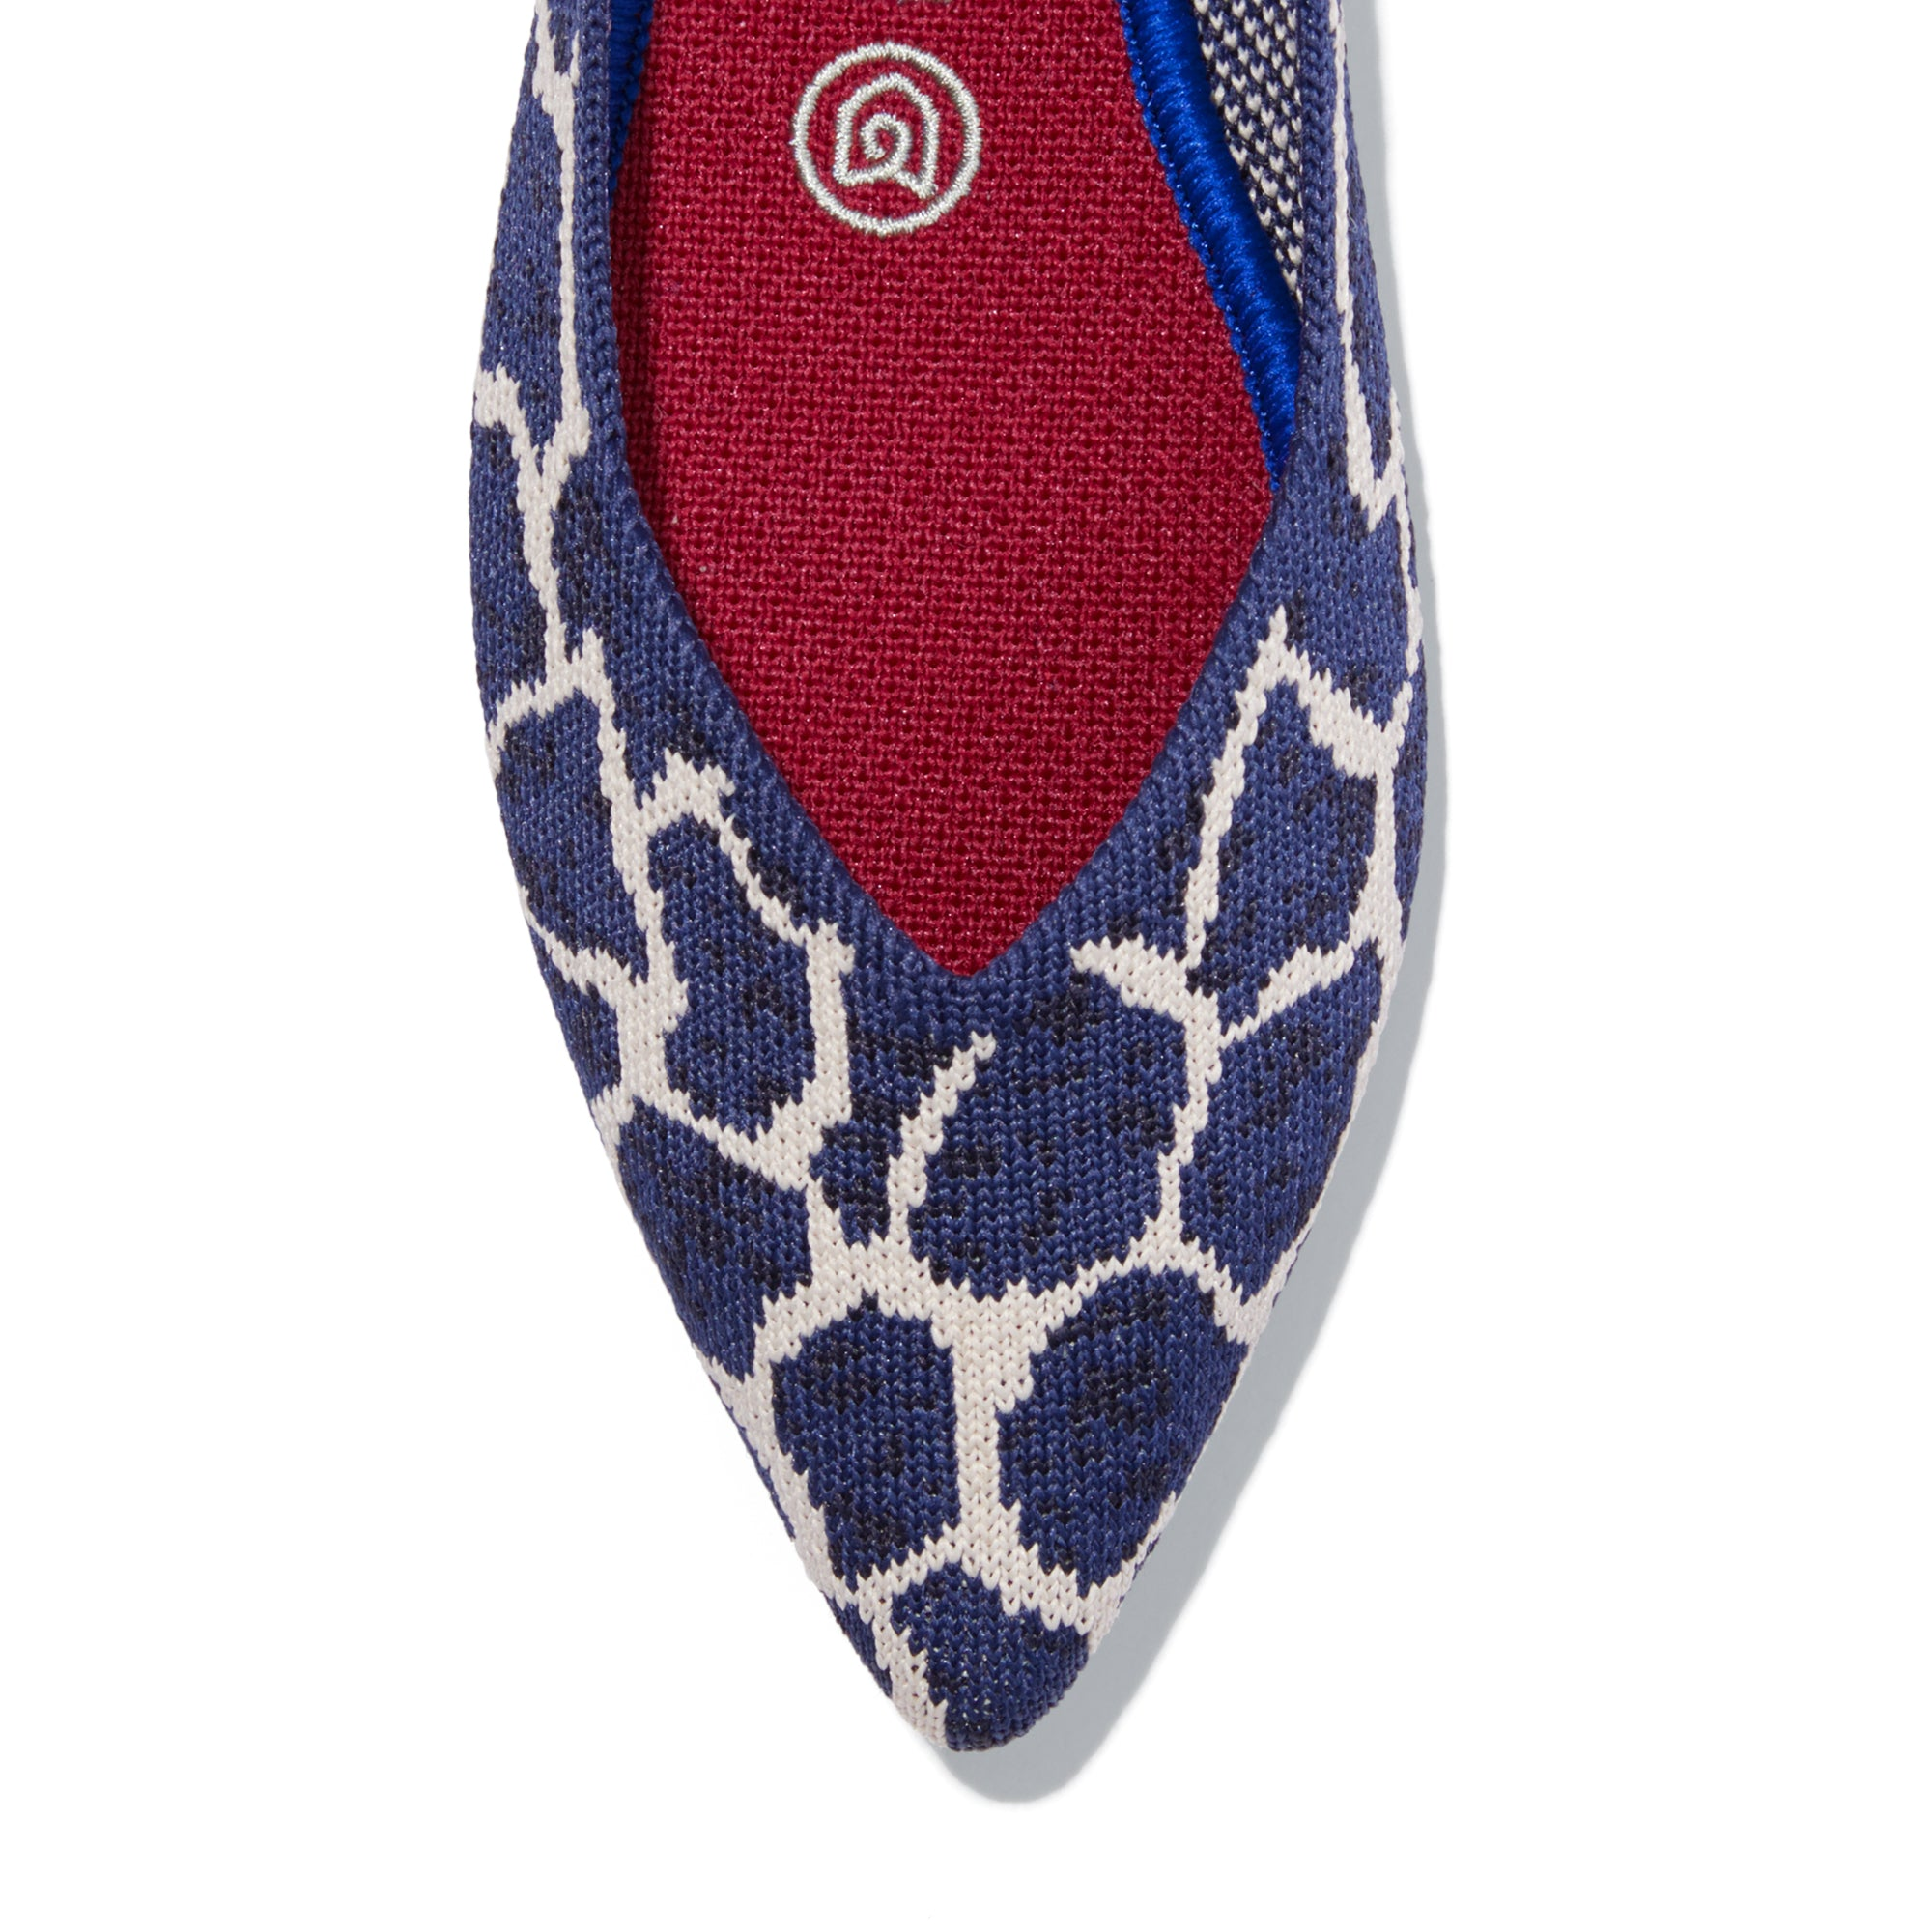 The Point shoe in Indigo Giraffe shown from the top view with detailing of the front of the shoe.